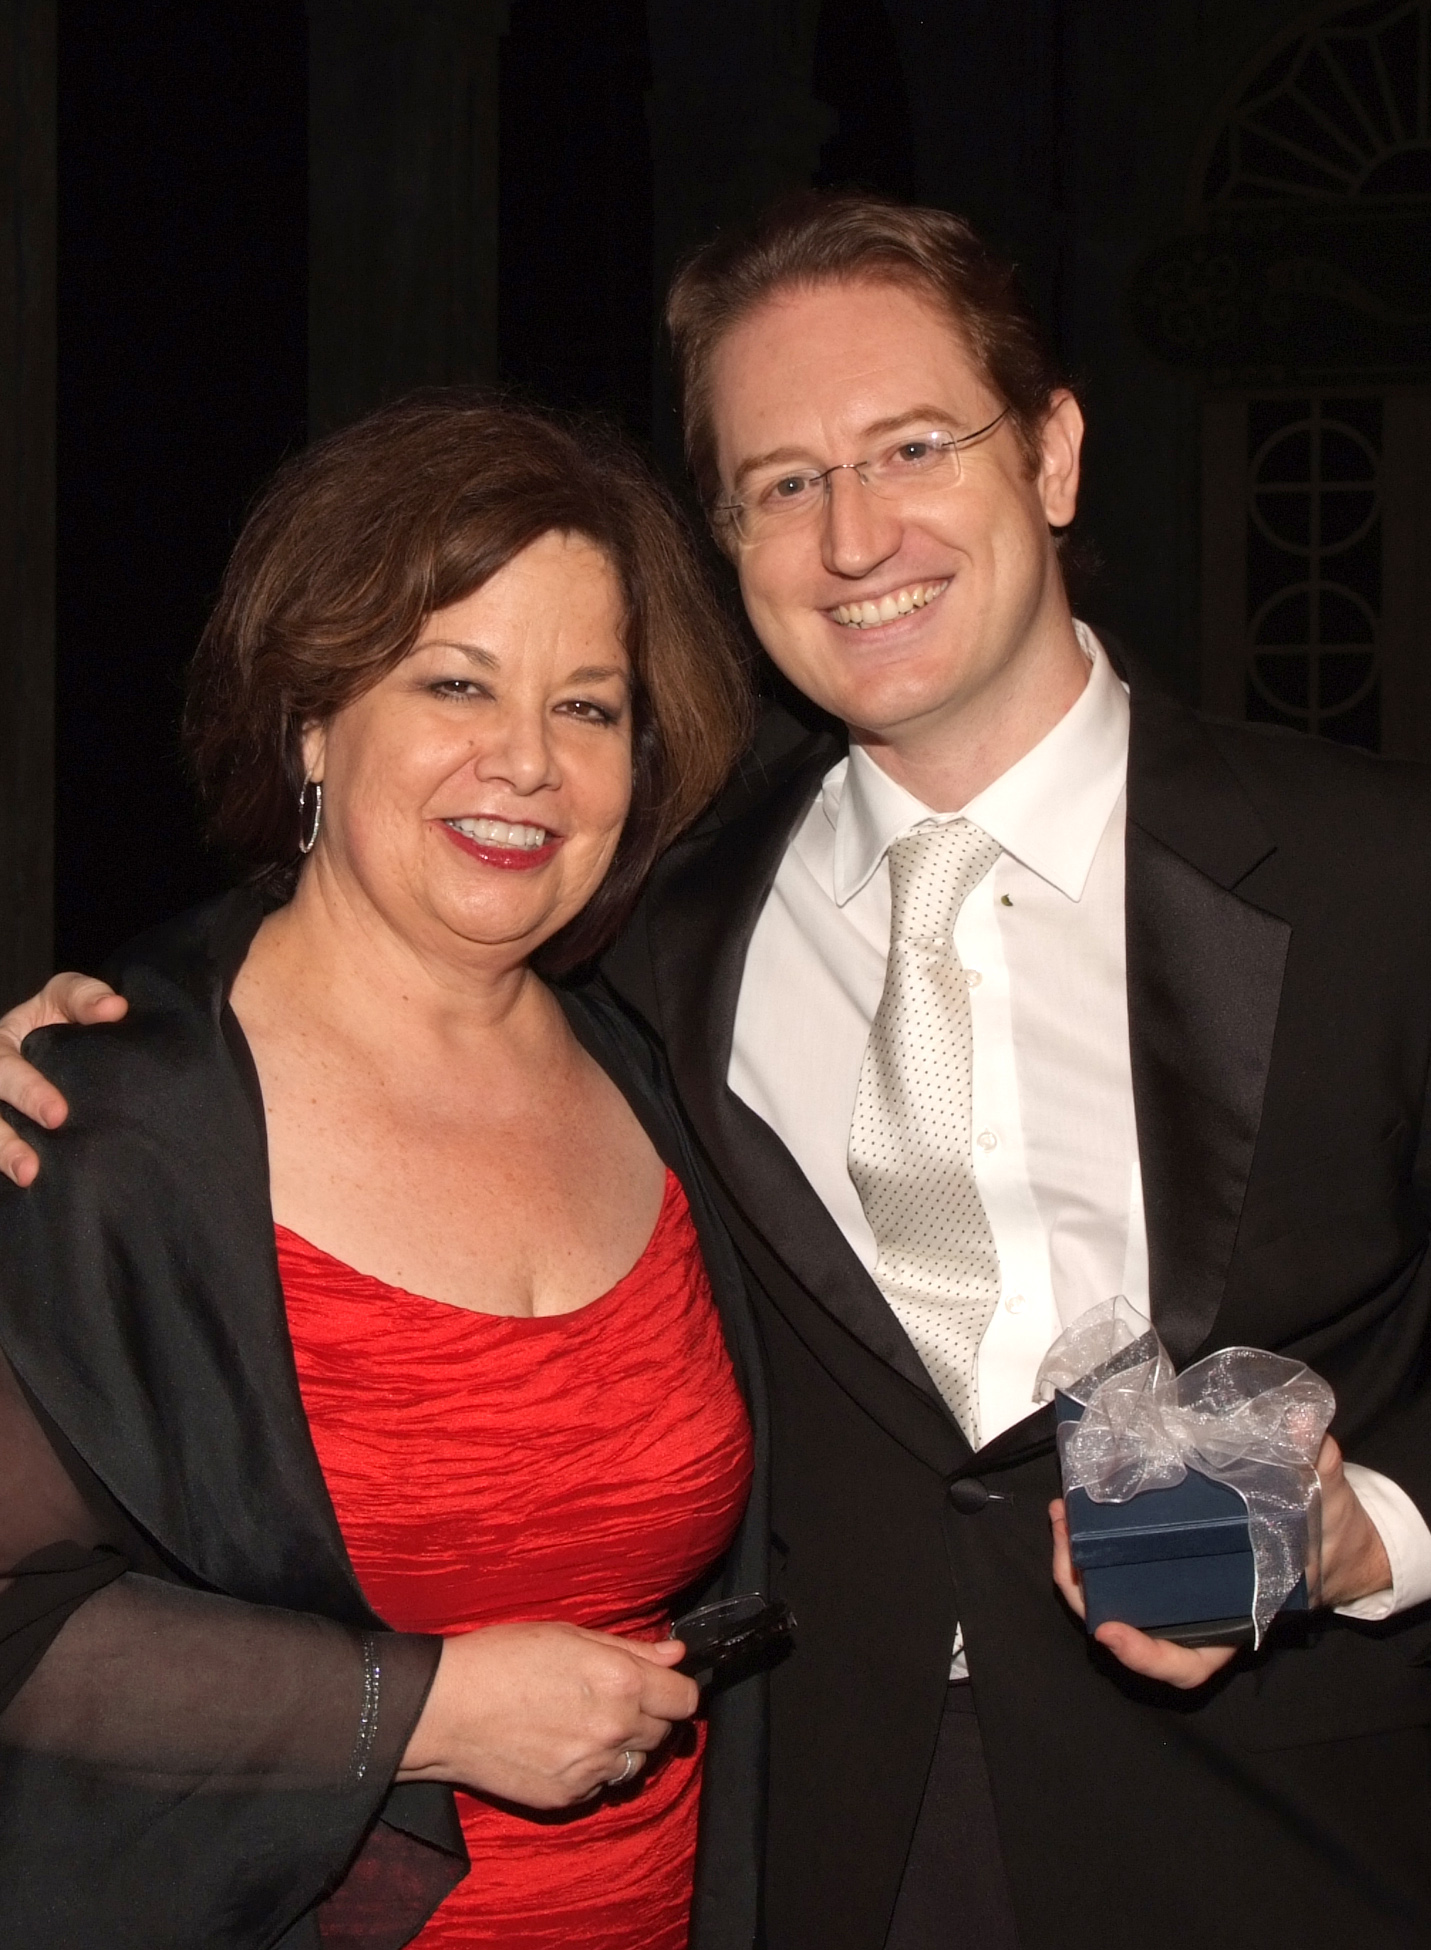 Florida Grand Opera's General Director and CEO, Susan T. Danis, with Maestro Ramon Tebar, FGO's Music Director and conductor of La bohème